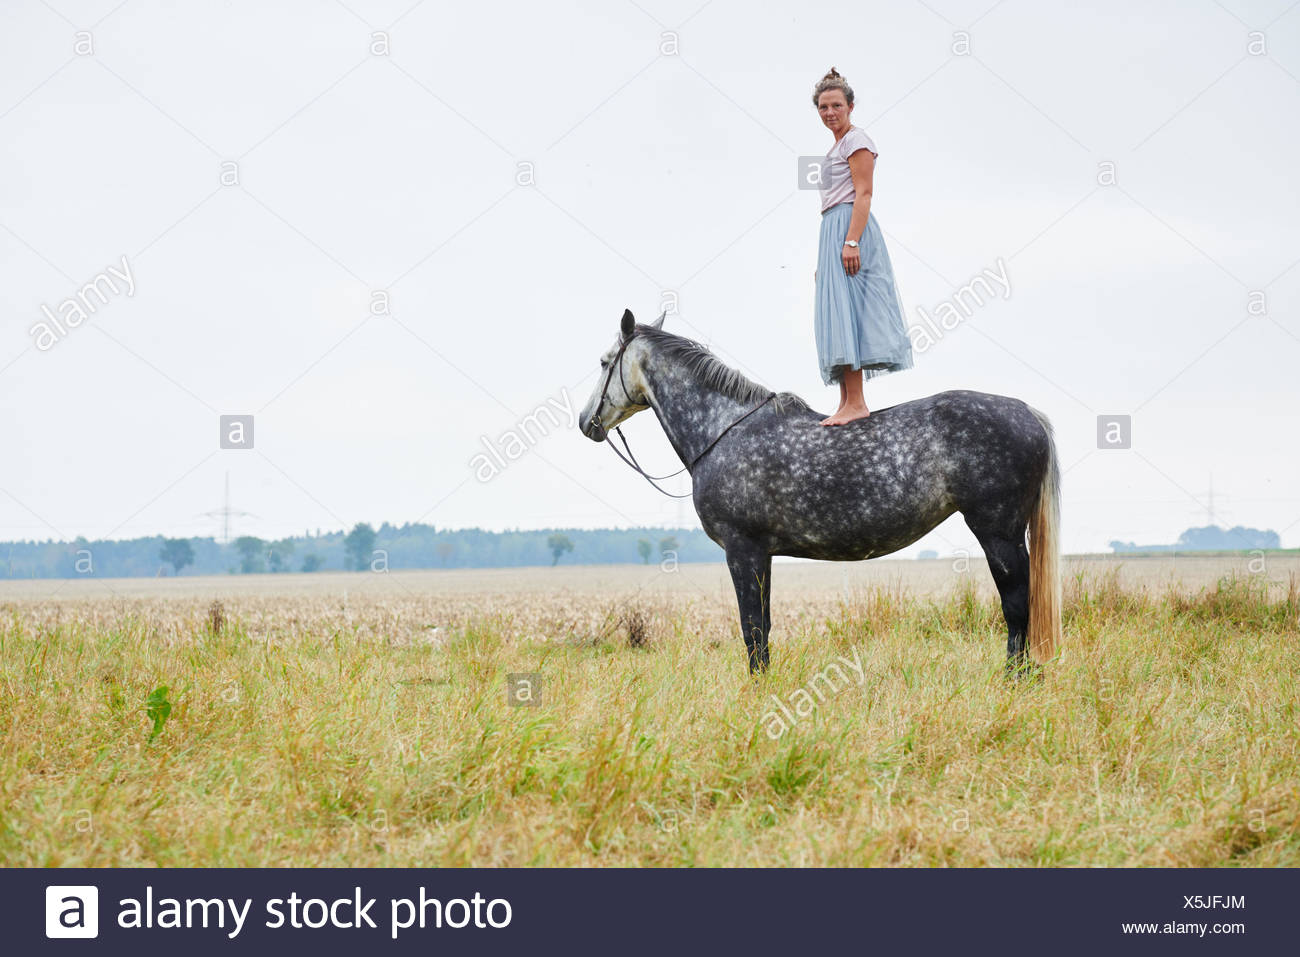 Woman in skirt standing on top of dapple grey horse in field - Stock Image